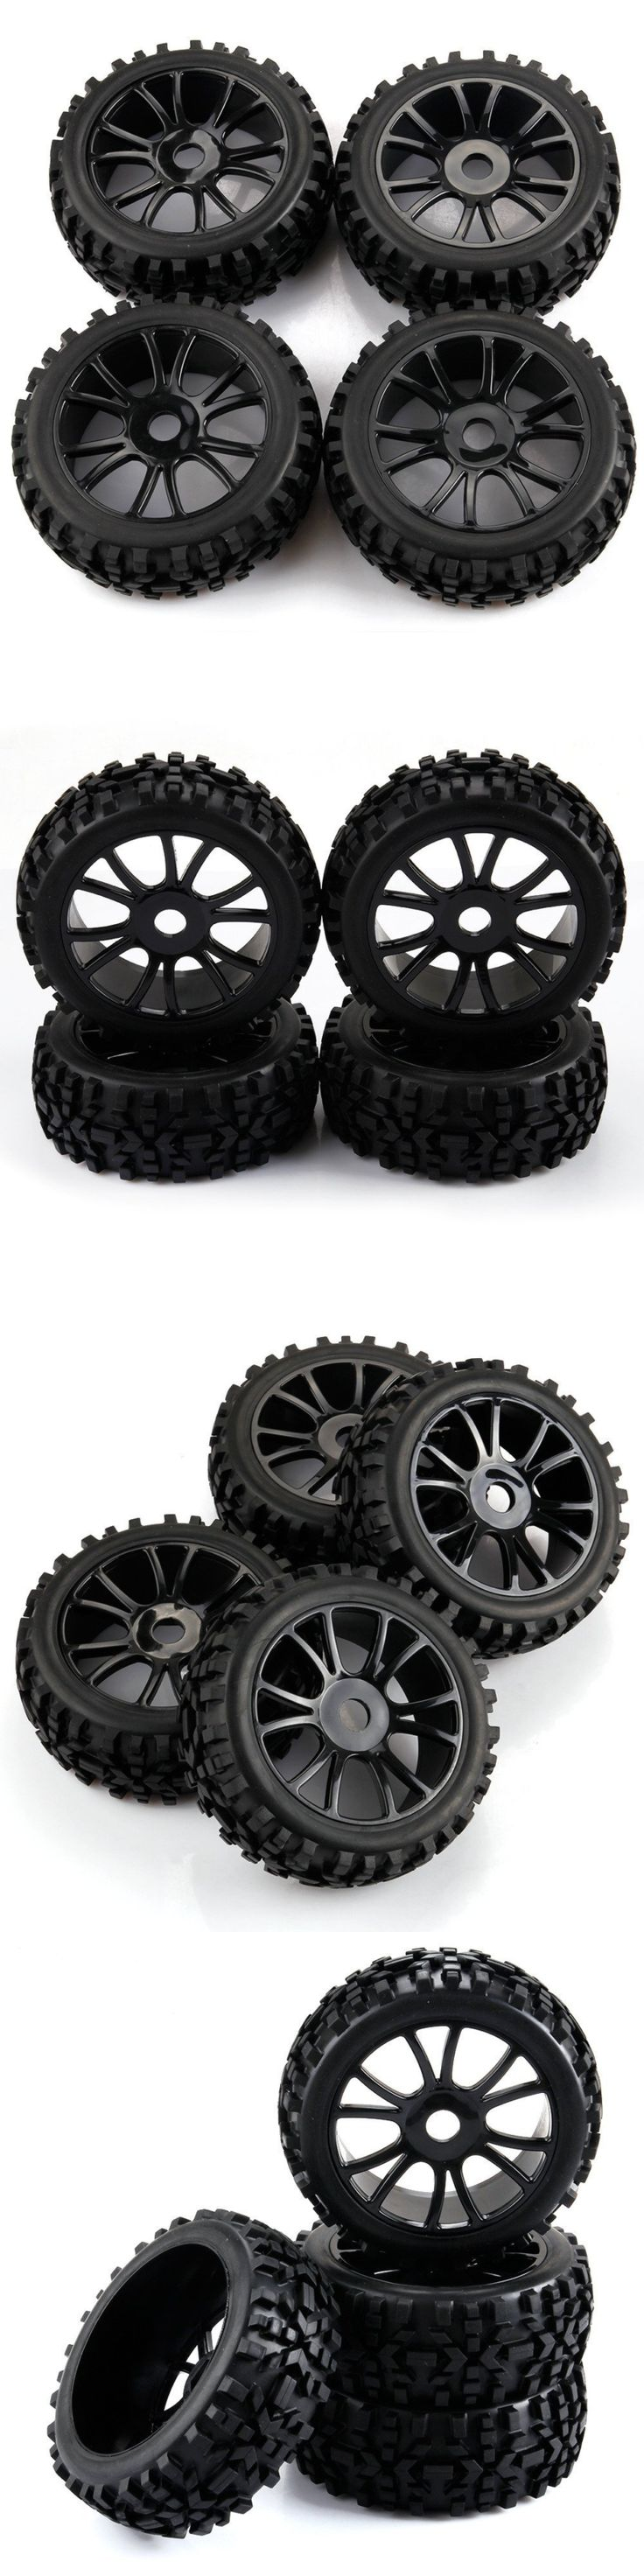 Wheels Tires Rims and Hubs 182201: New 1 8 Scale Rc Off Road Car Buggy Racing Tires Tyre And Wheels Premounted Tire -> BUY IT NOW ONLY: $35.41 on eBay!